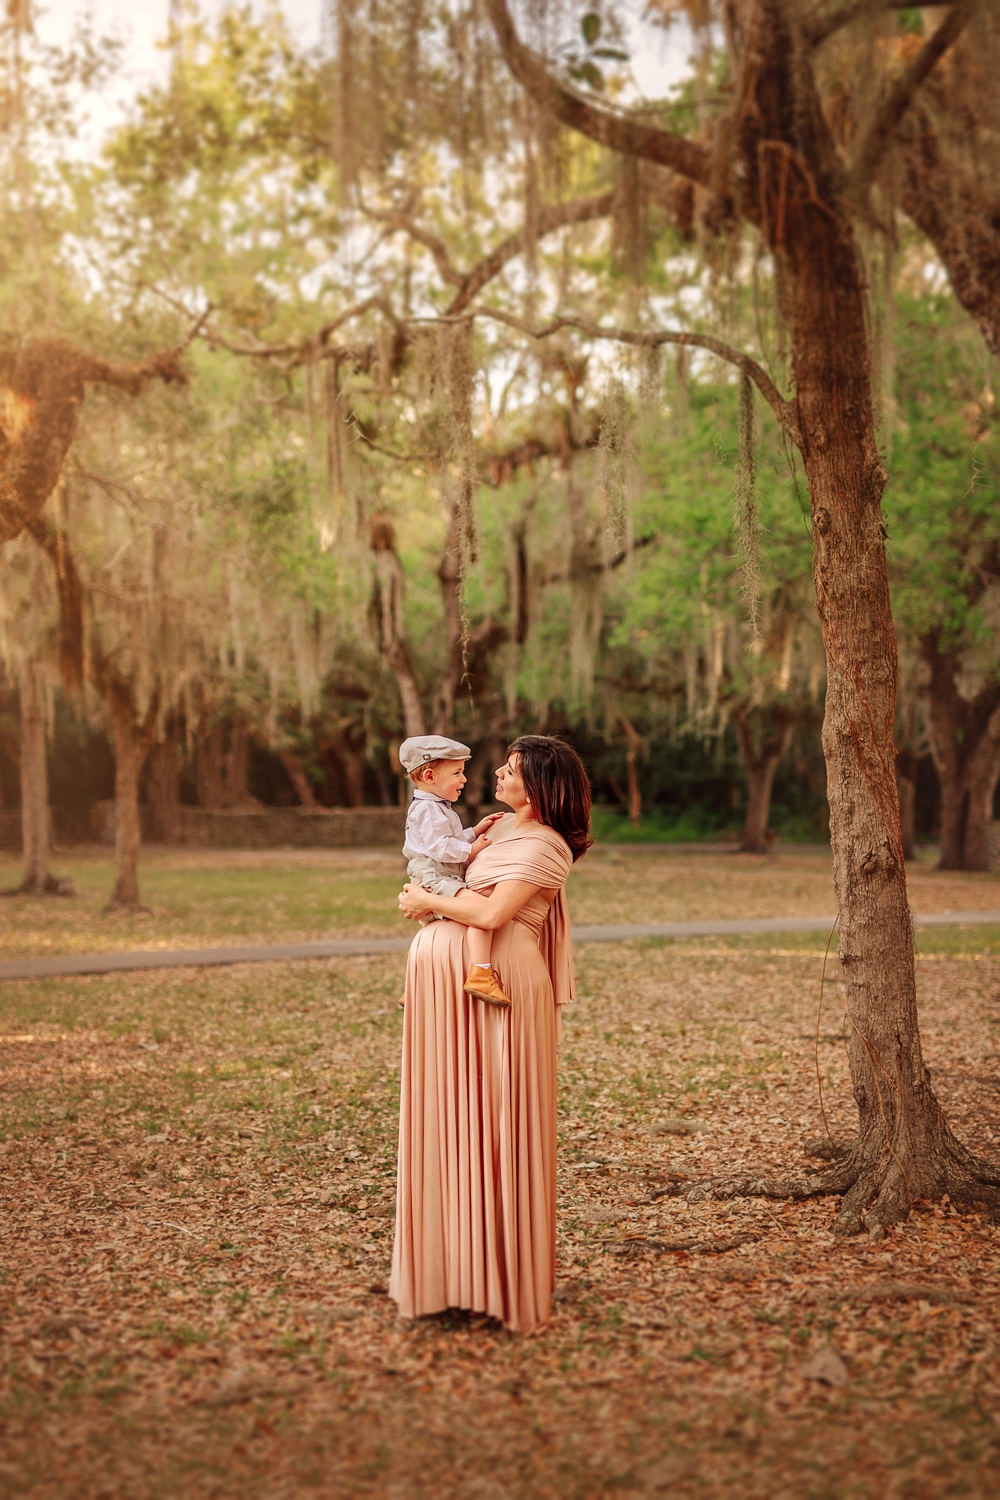 Best-Miami-South-Florida-Maternity-Newborn-Lifestyle-Family-Photographer_0005.jpg